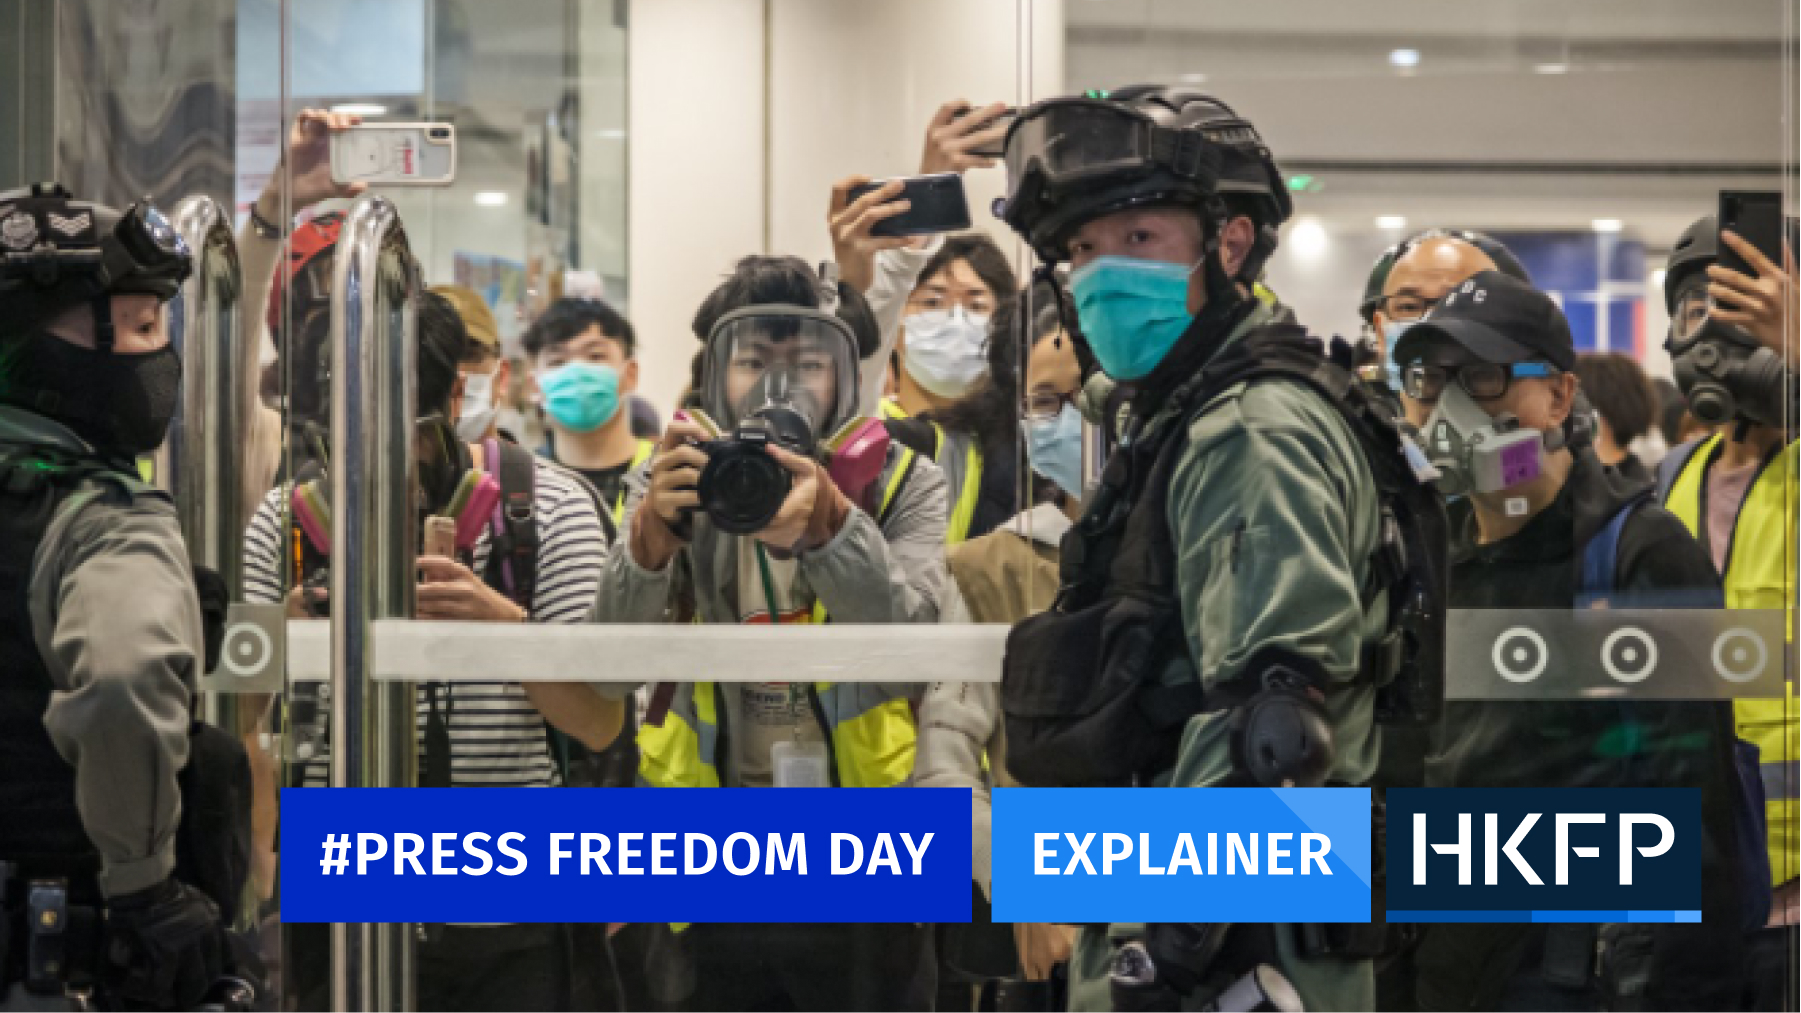 Explainer: The decline of Hong Kong's press freedom under the national security law | Hong Kong Free Press HKFP